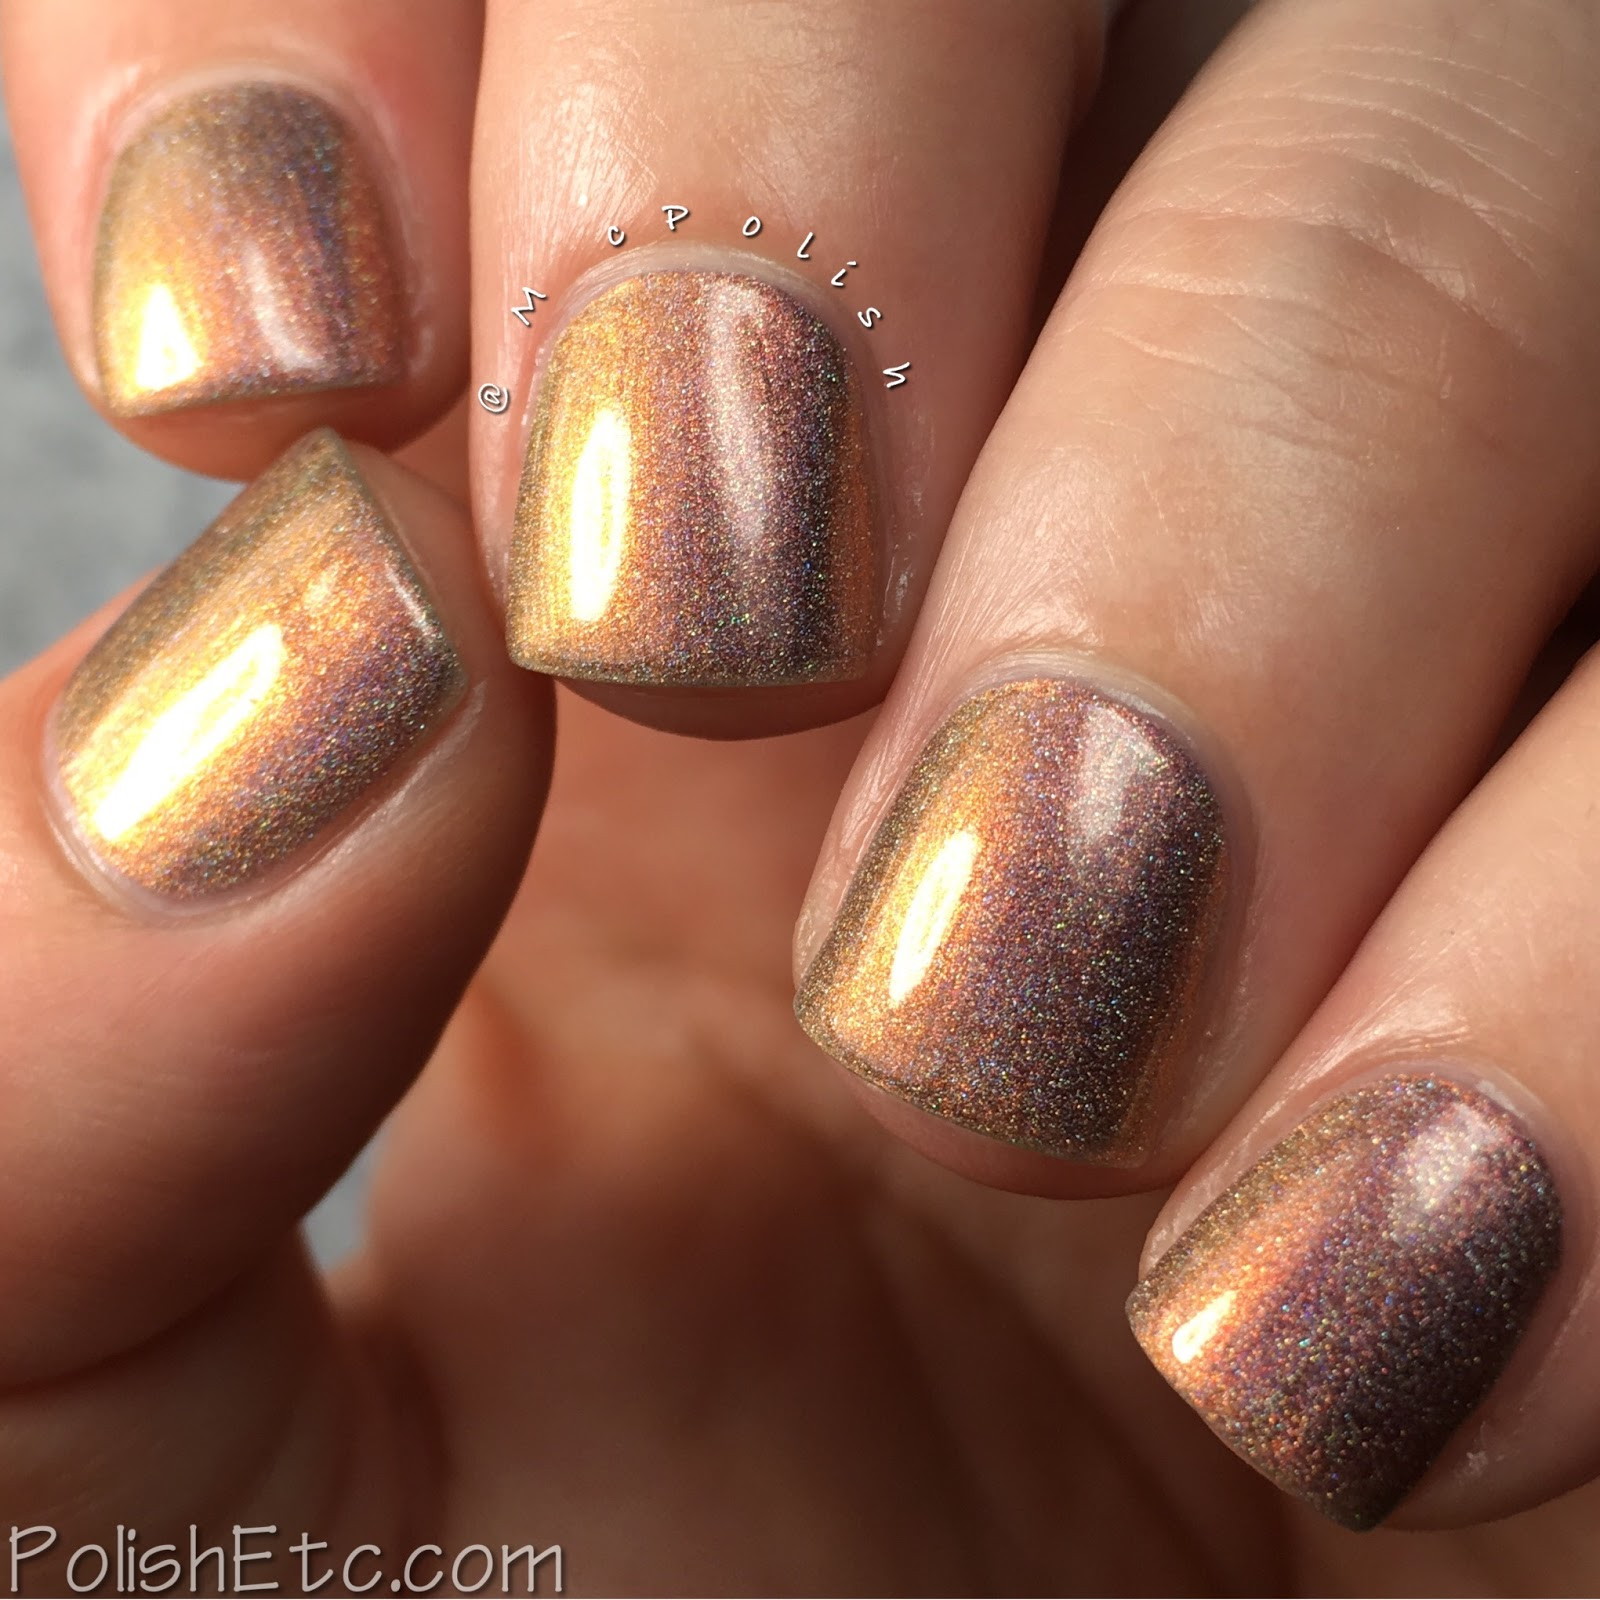 Candy Lacquer - The Twilight Zone Collection - McPolish - The Monsters are Due on Maple Street